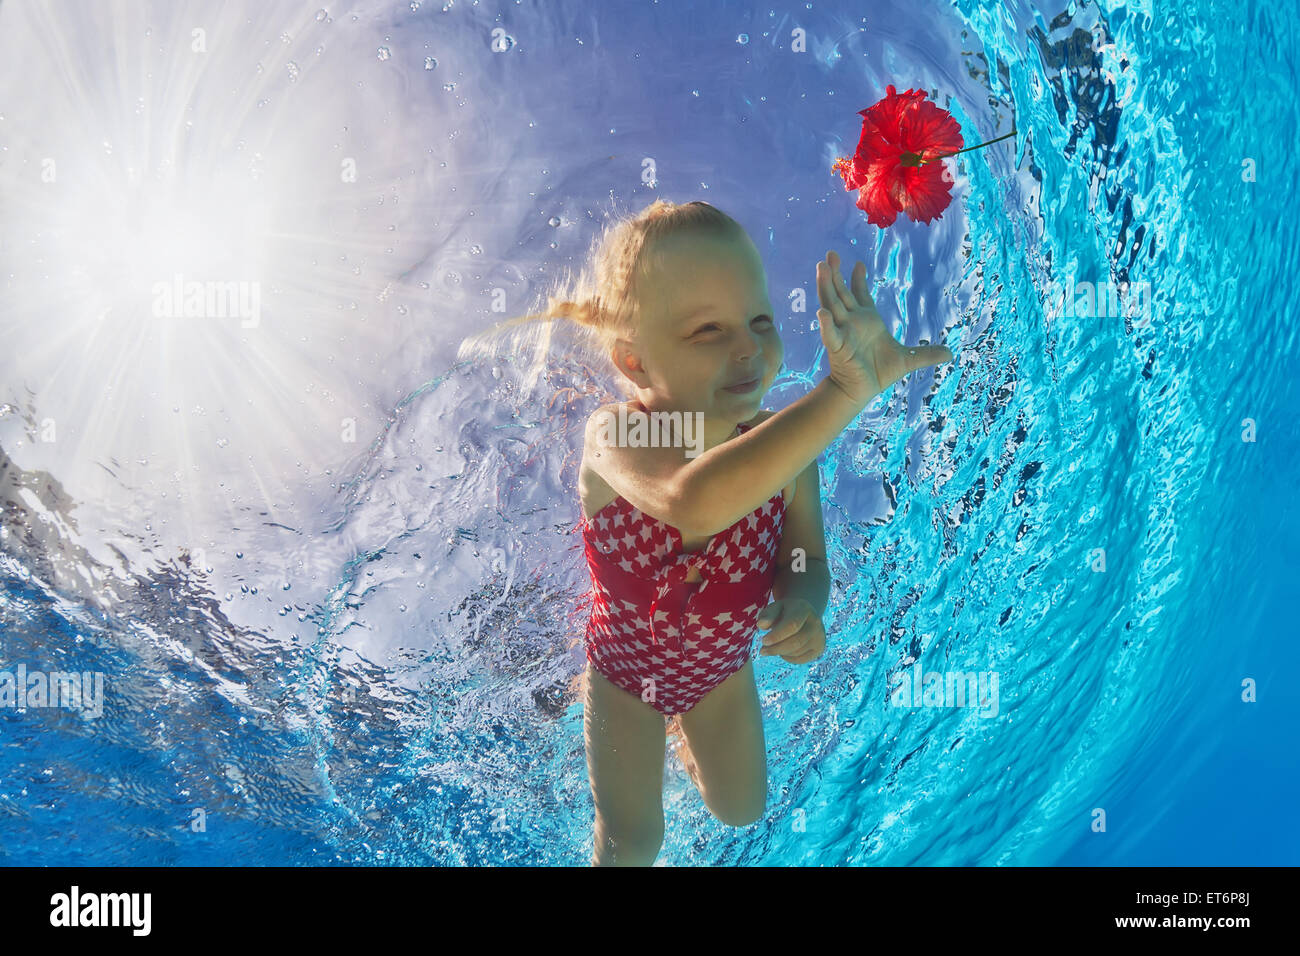 Happy little baby with smile and open eyes diving underwater in the clear blue water for a bright red flower. Stock Photo